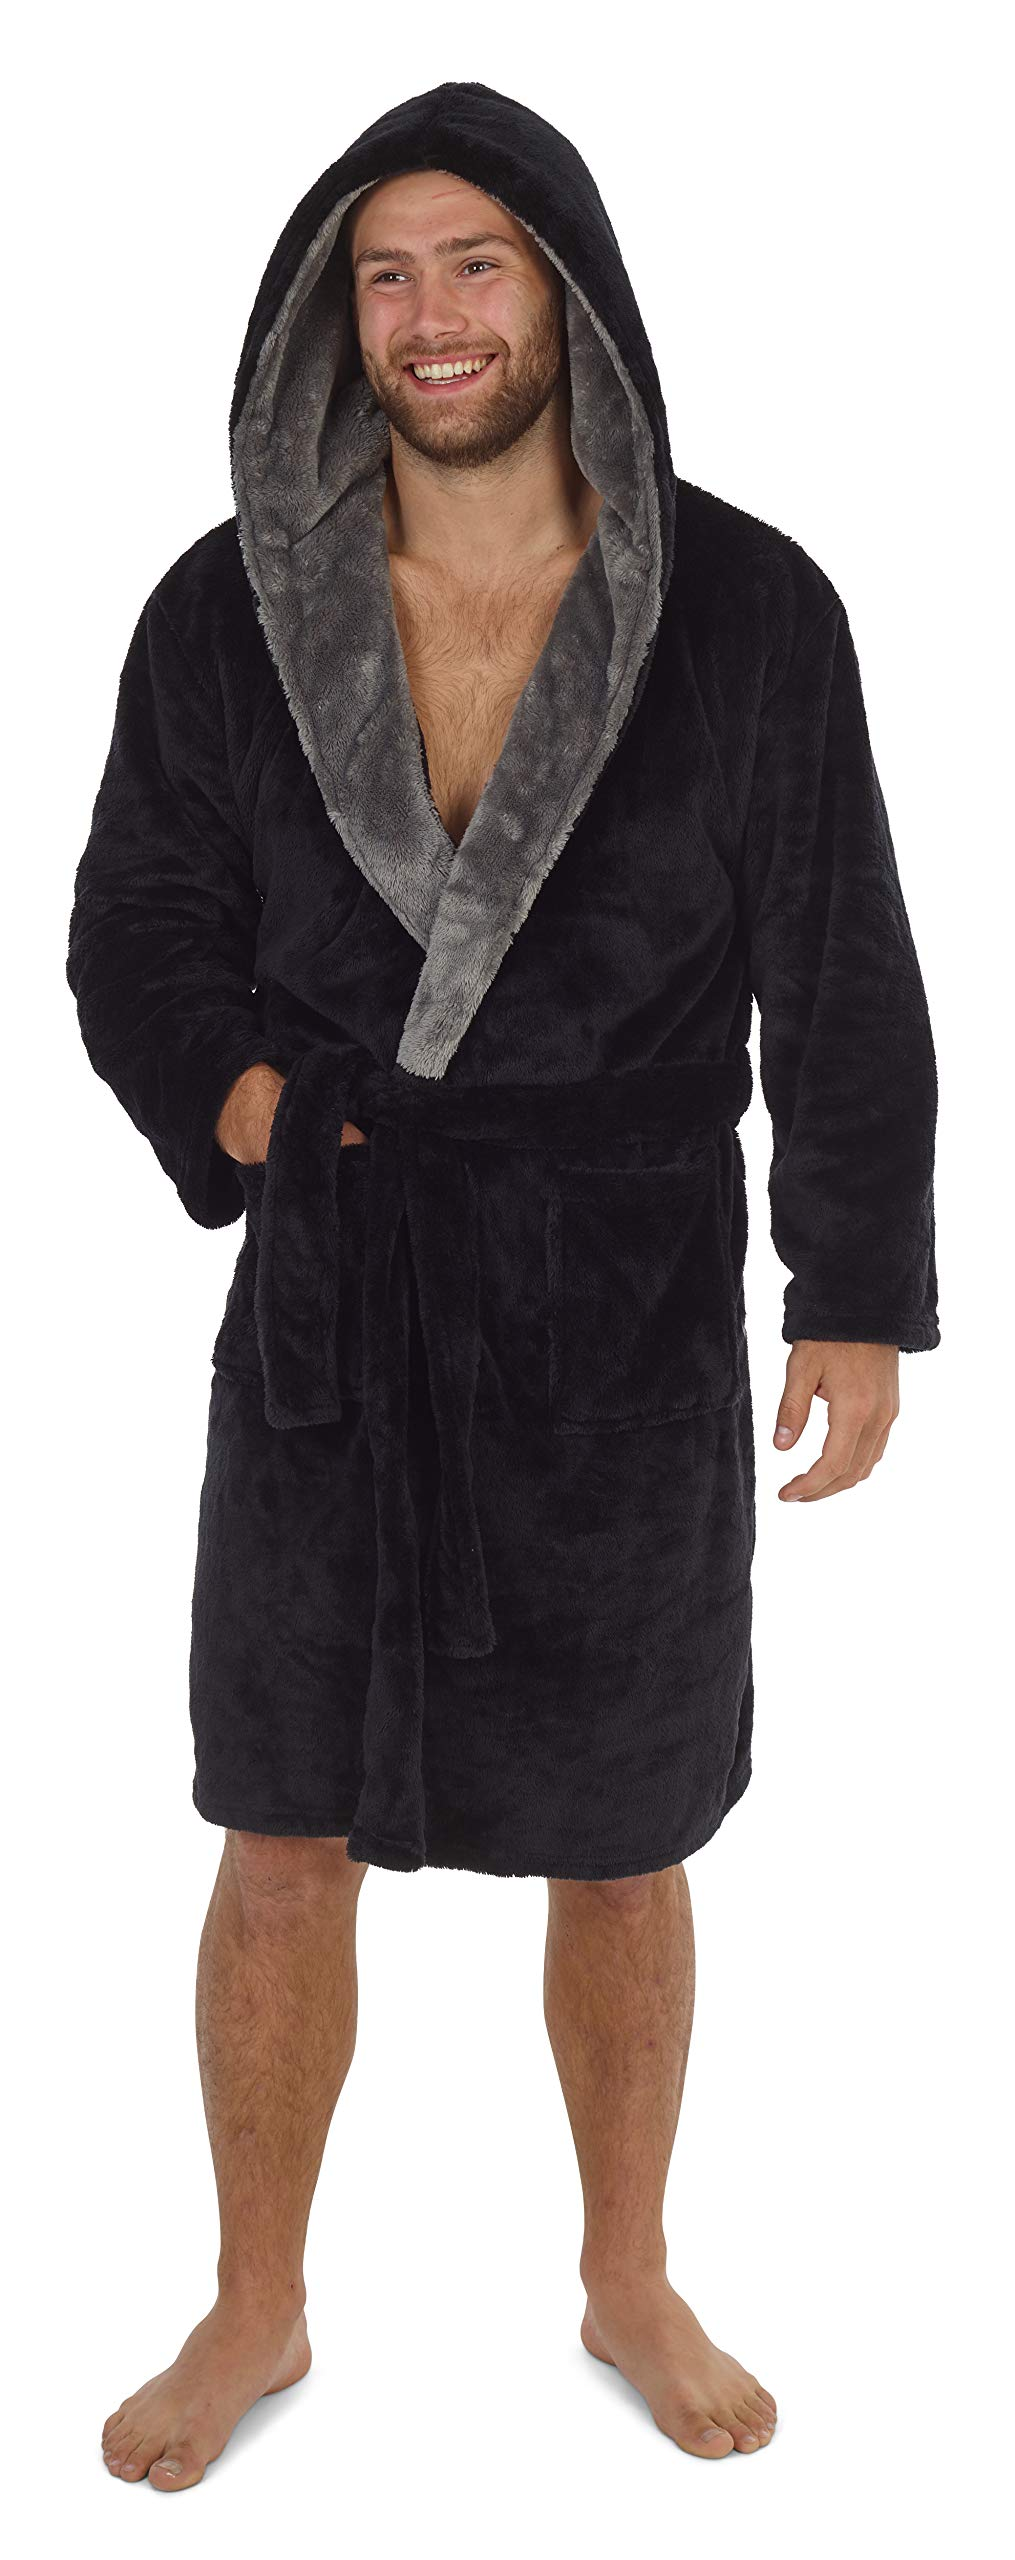 Retirement Novelty Gifts for Him Super Soft Mens Dressing Gown with Hood Black Or Grey Fleece Lounge Wear Birthday CityComfort Dressing Gown Mens Fluffy Anniversary